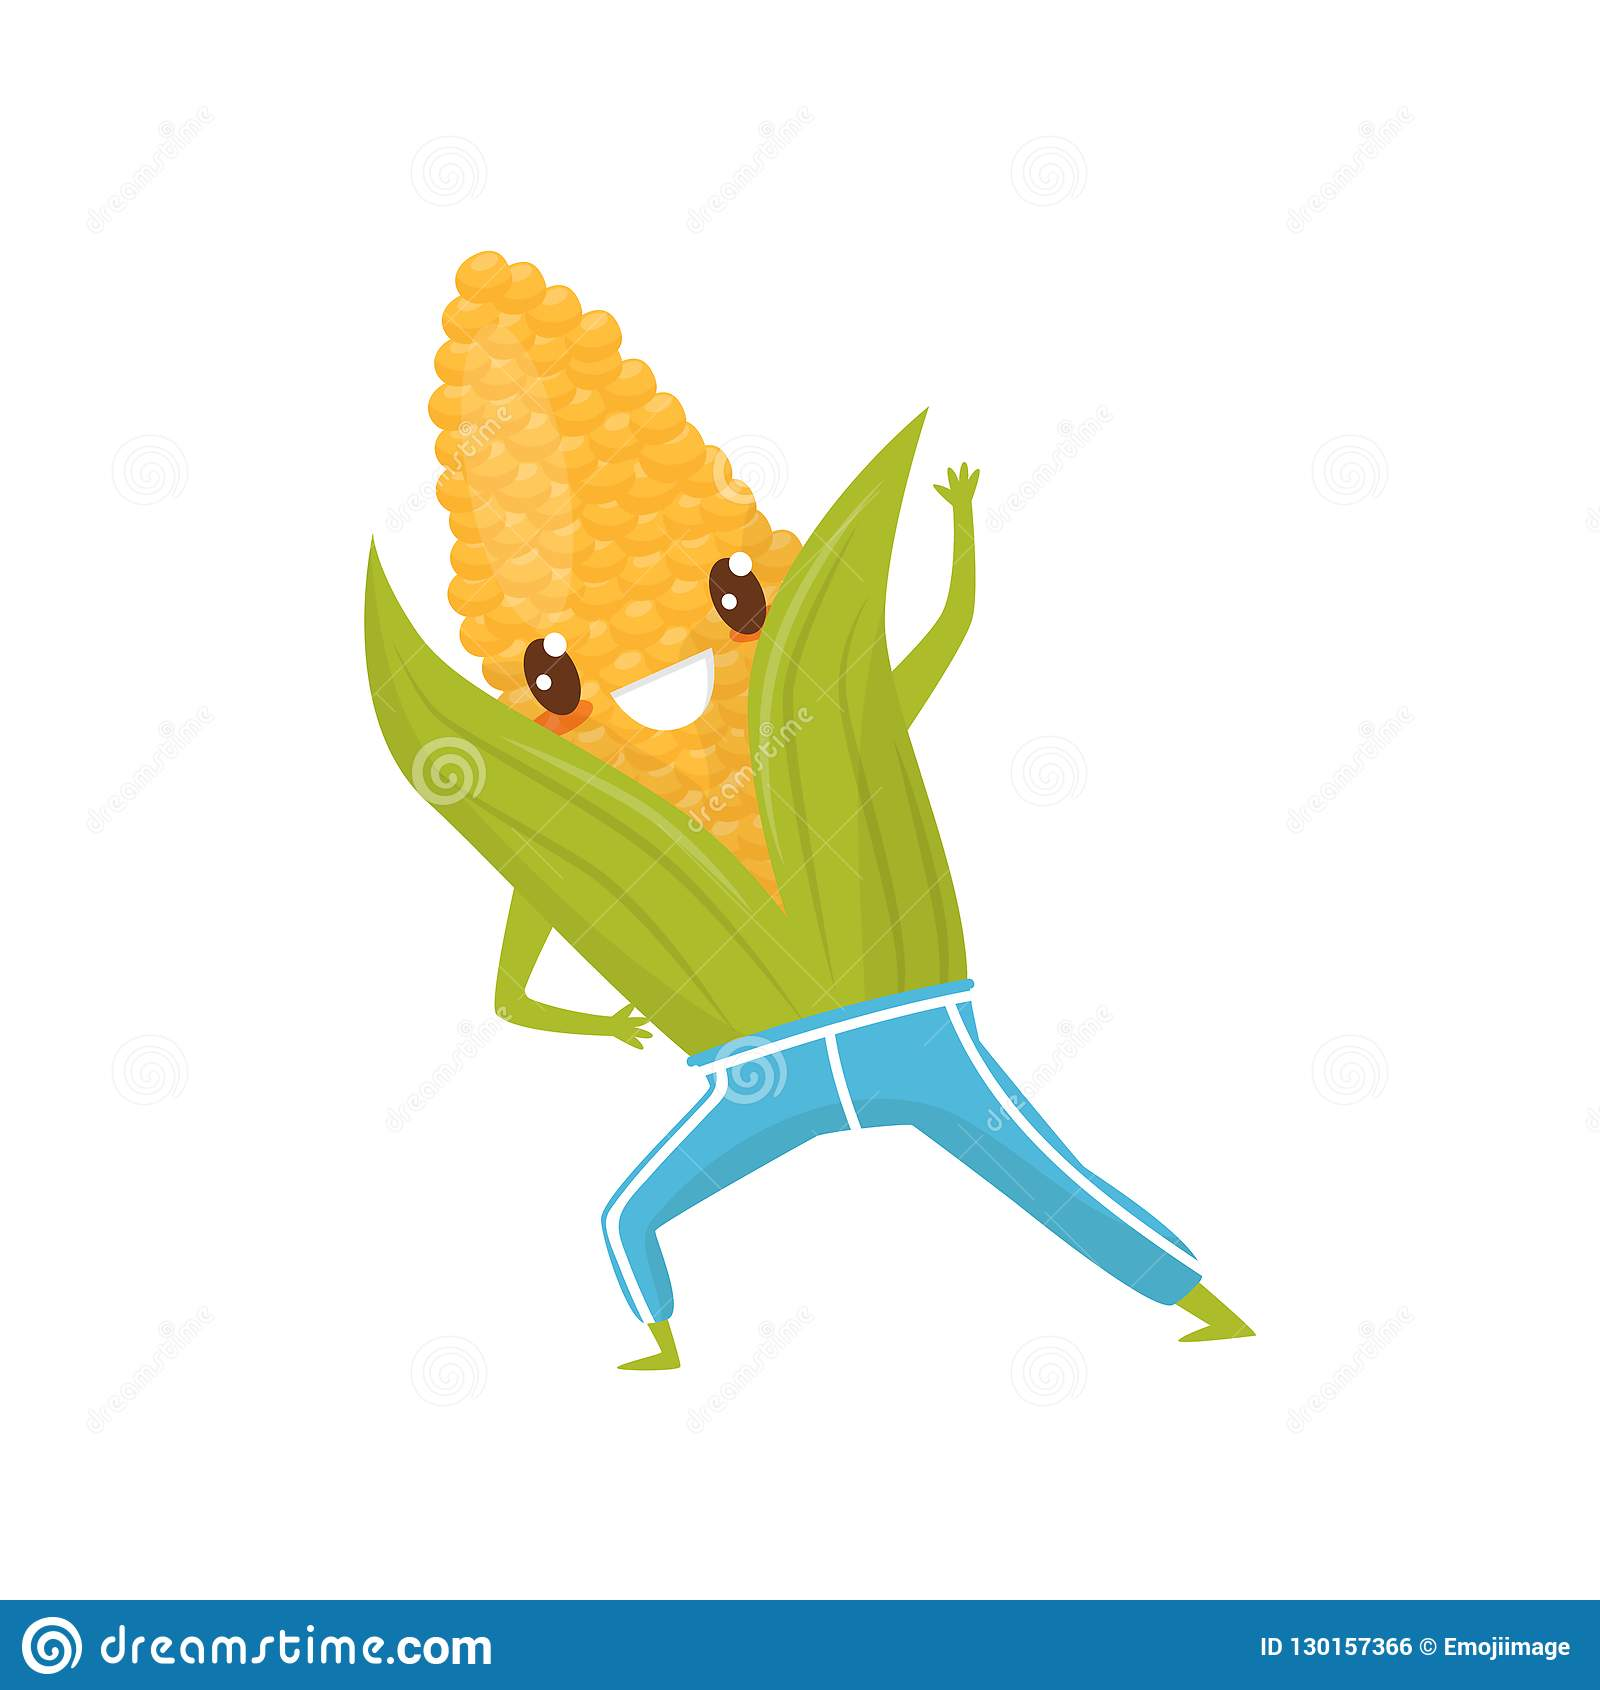 Funny corncob doing sports, sportive vegetable cartoon character vector Illustration on a white background